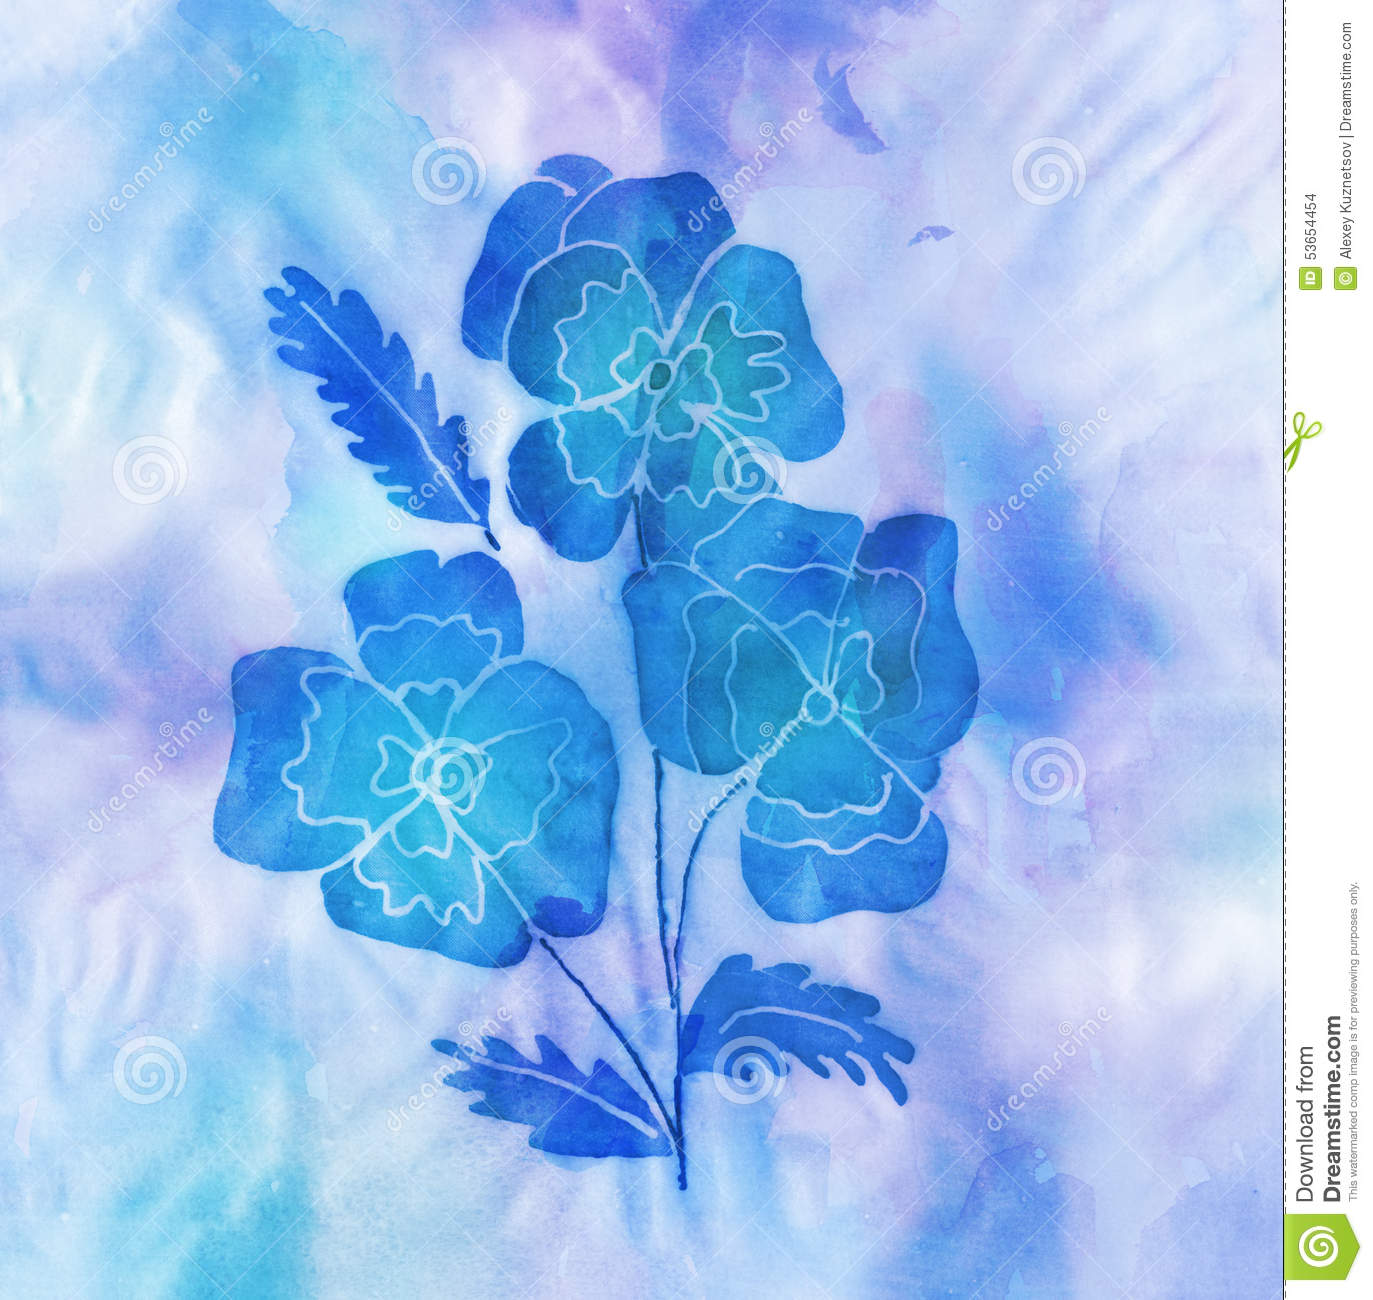 Batic artwork of blue flowers stock illustration image for How are blue roses made